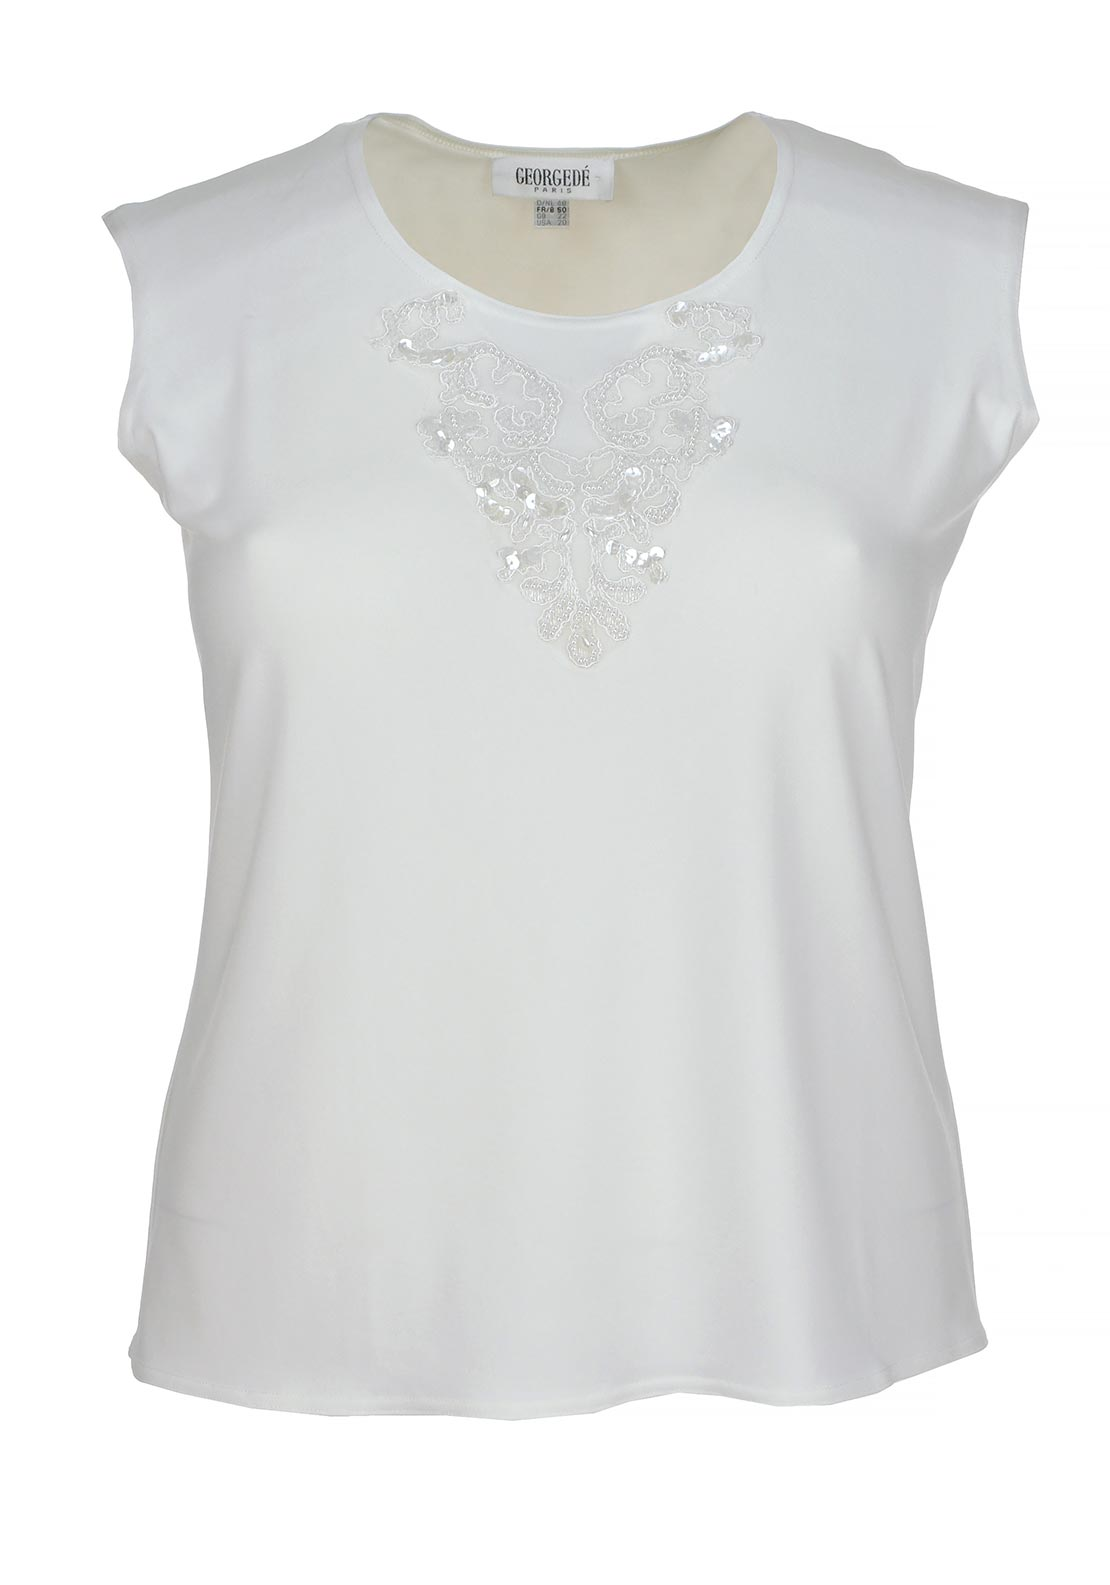 Georgede Embellished Sleeveless Top, Ecru Cream